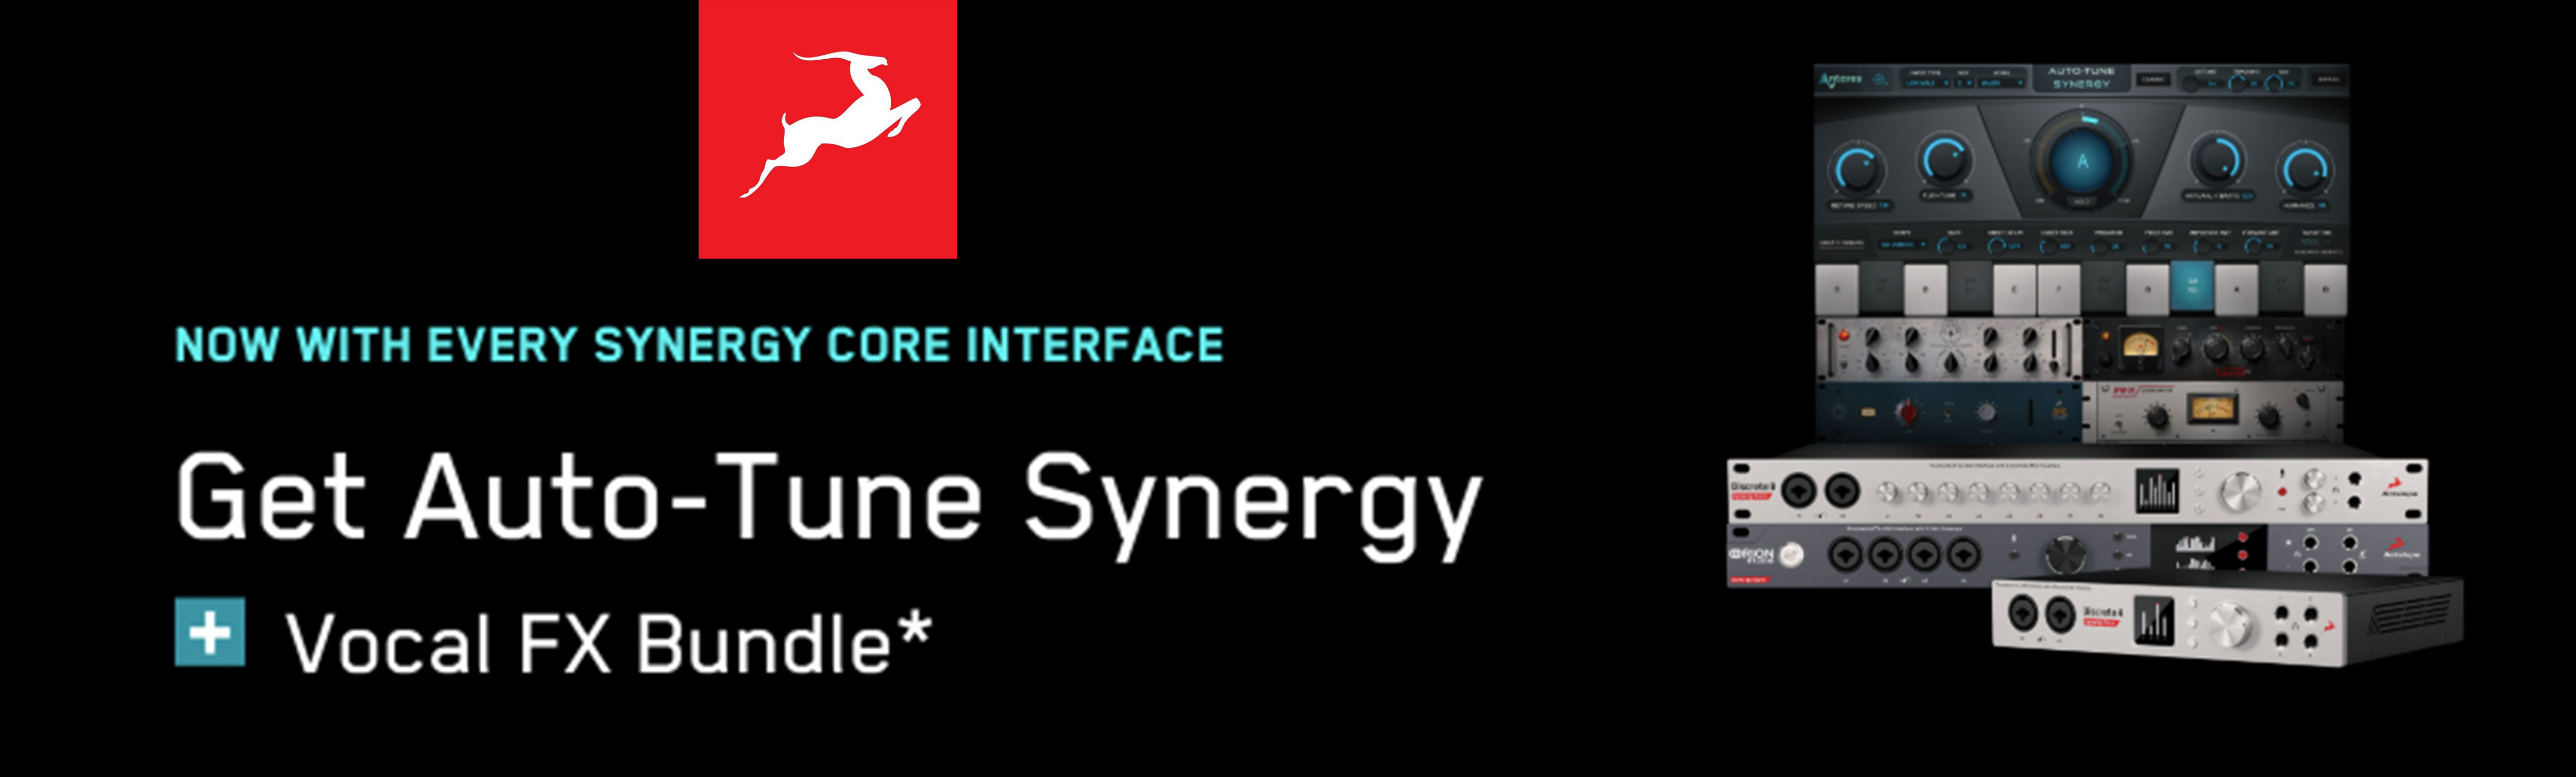 Antelope Synergy Core Sales